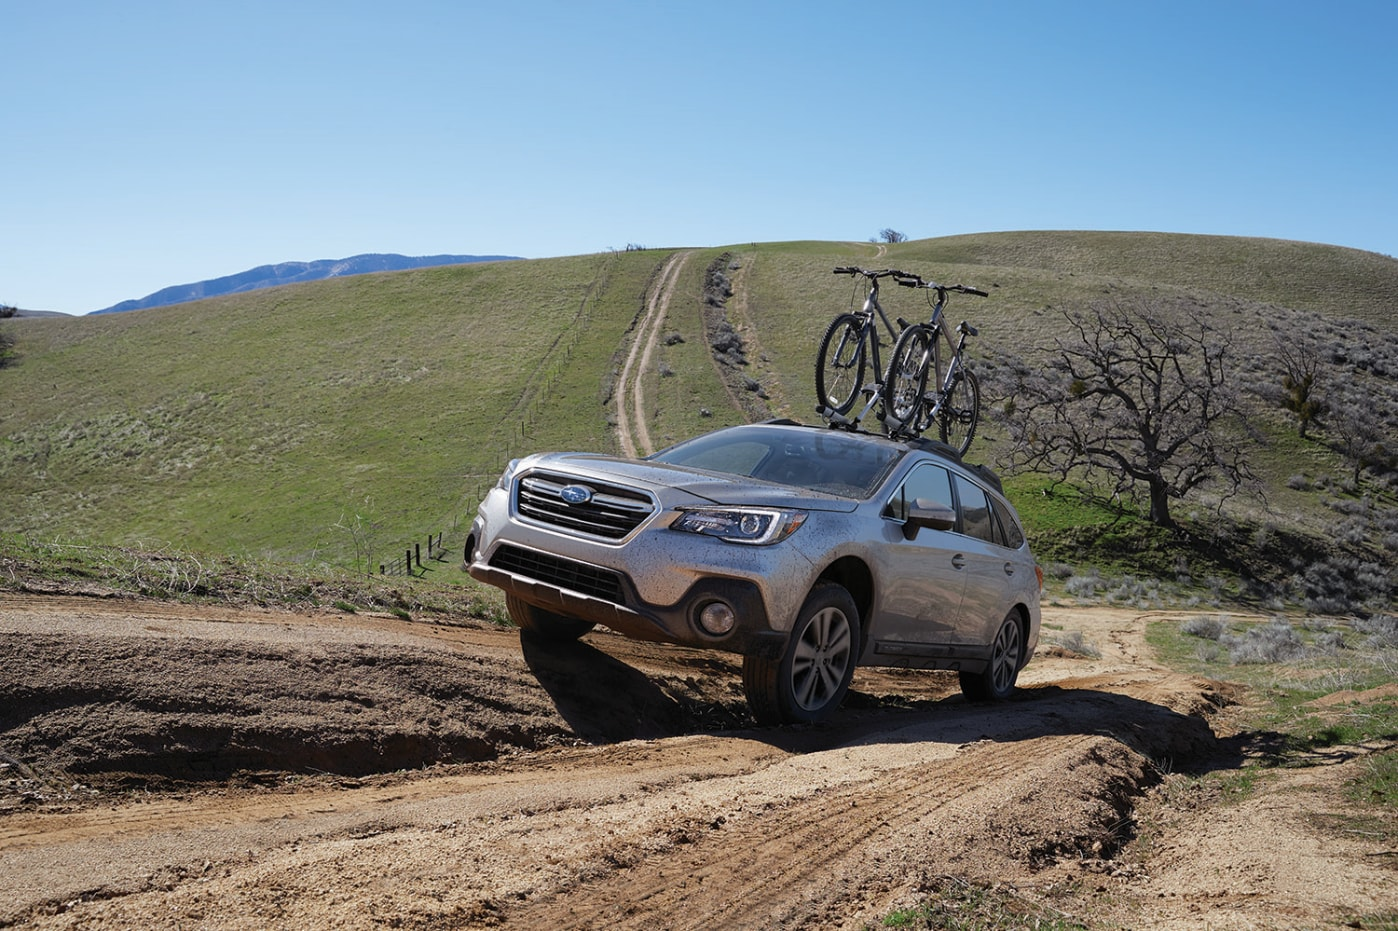 2018 Subaru Outback Off-Road Performance